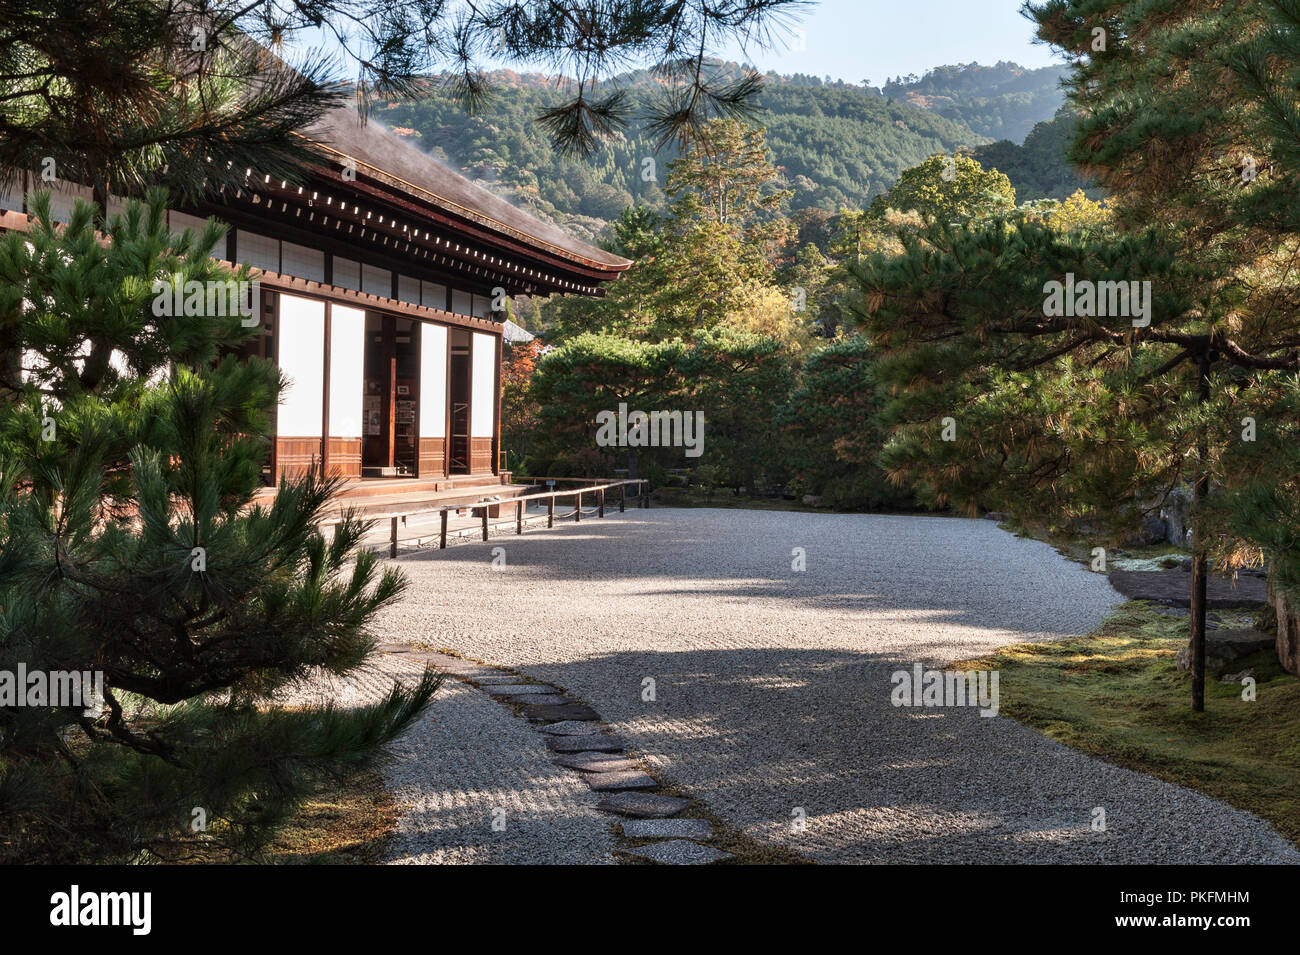 Nanzen-ji, Kyoto, Japan. The kare-sansui (dry landscape) garden at Konchi-in zen temple - Stock Image